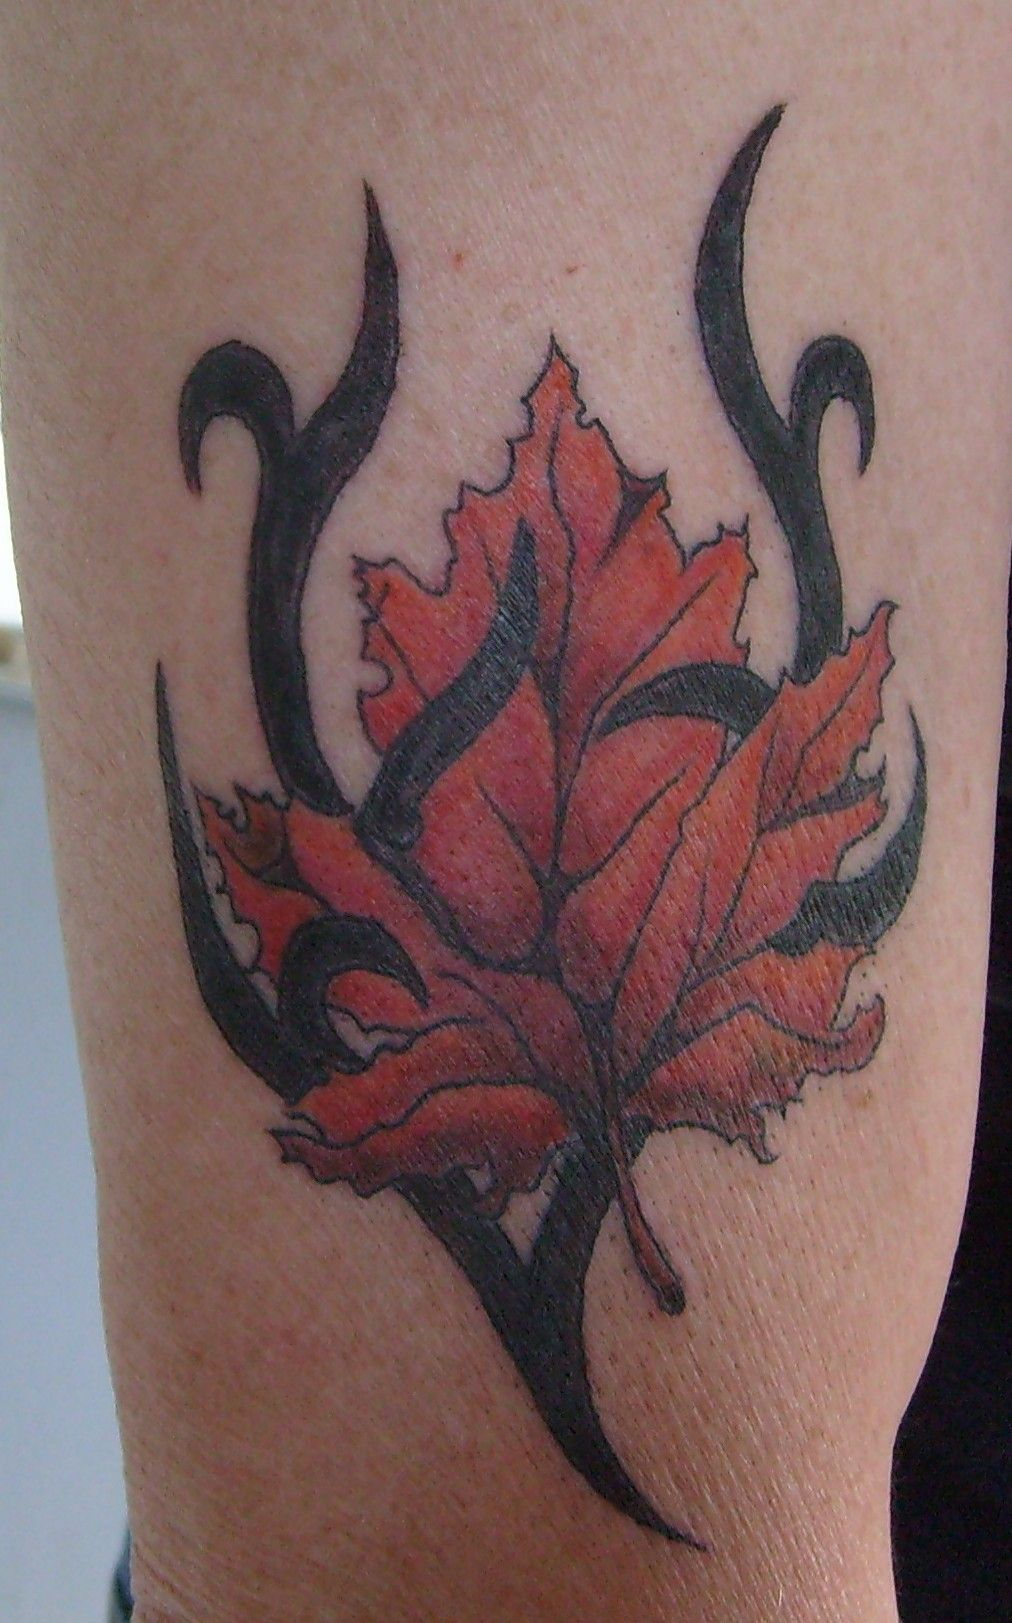 Name canadian flag ripping through skin tattoo designjpg pictures - Canadian Eh Proud Canadian Tattoos